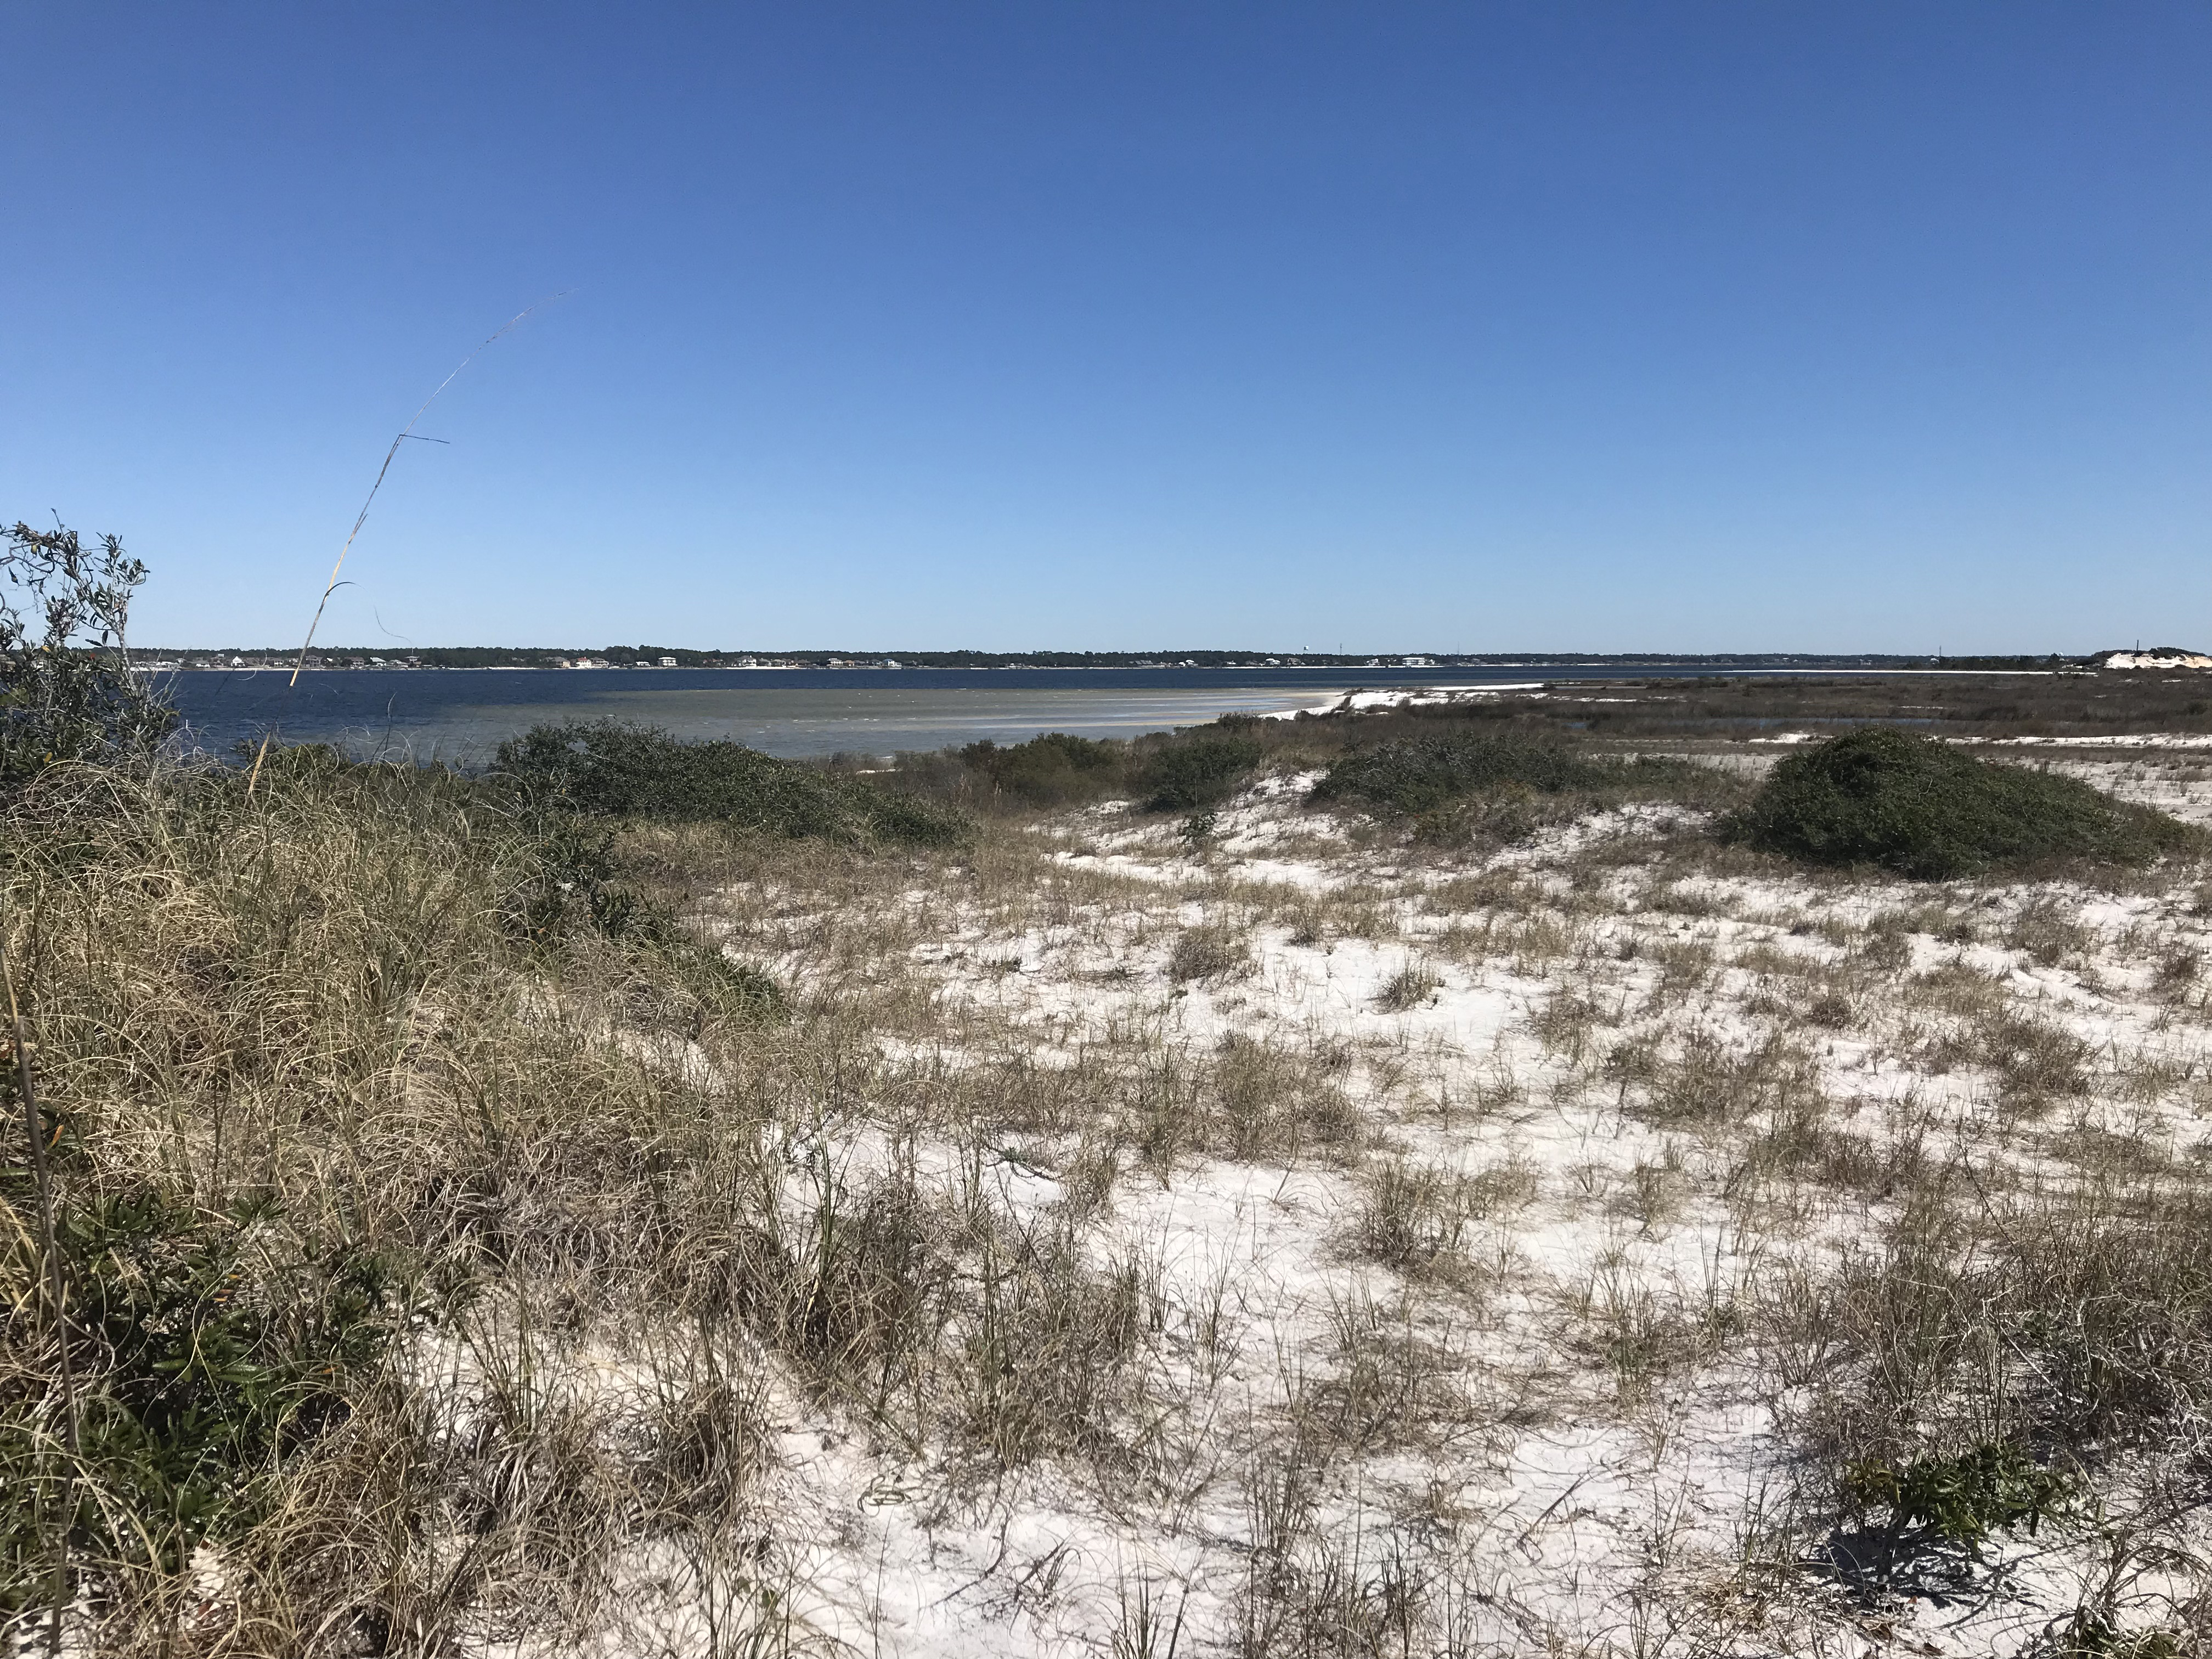 Coastal sand dunes with water in the background off Florida's coast.